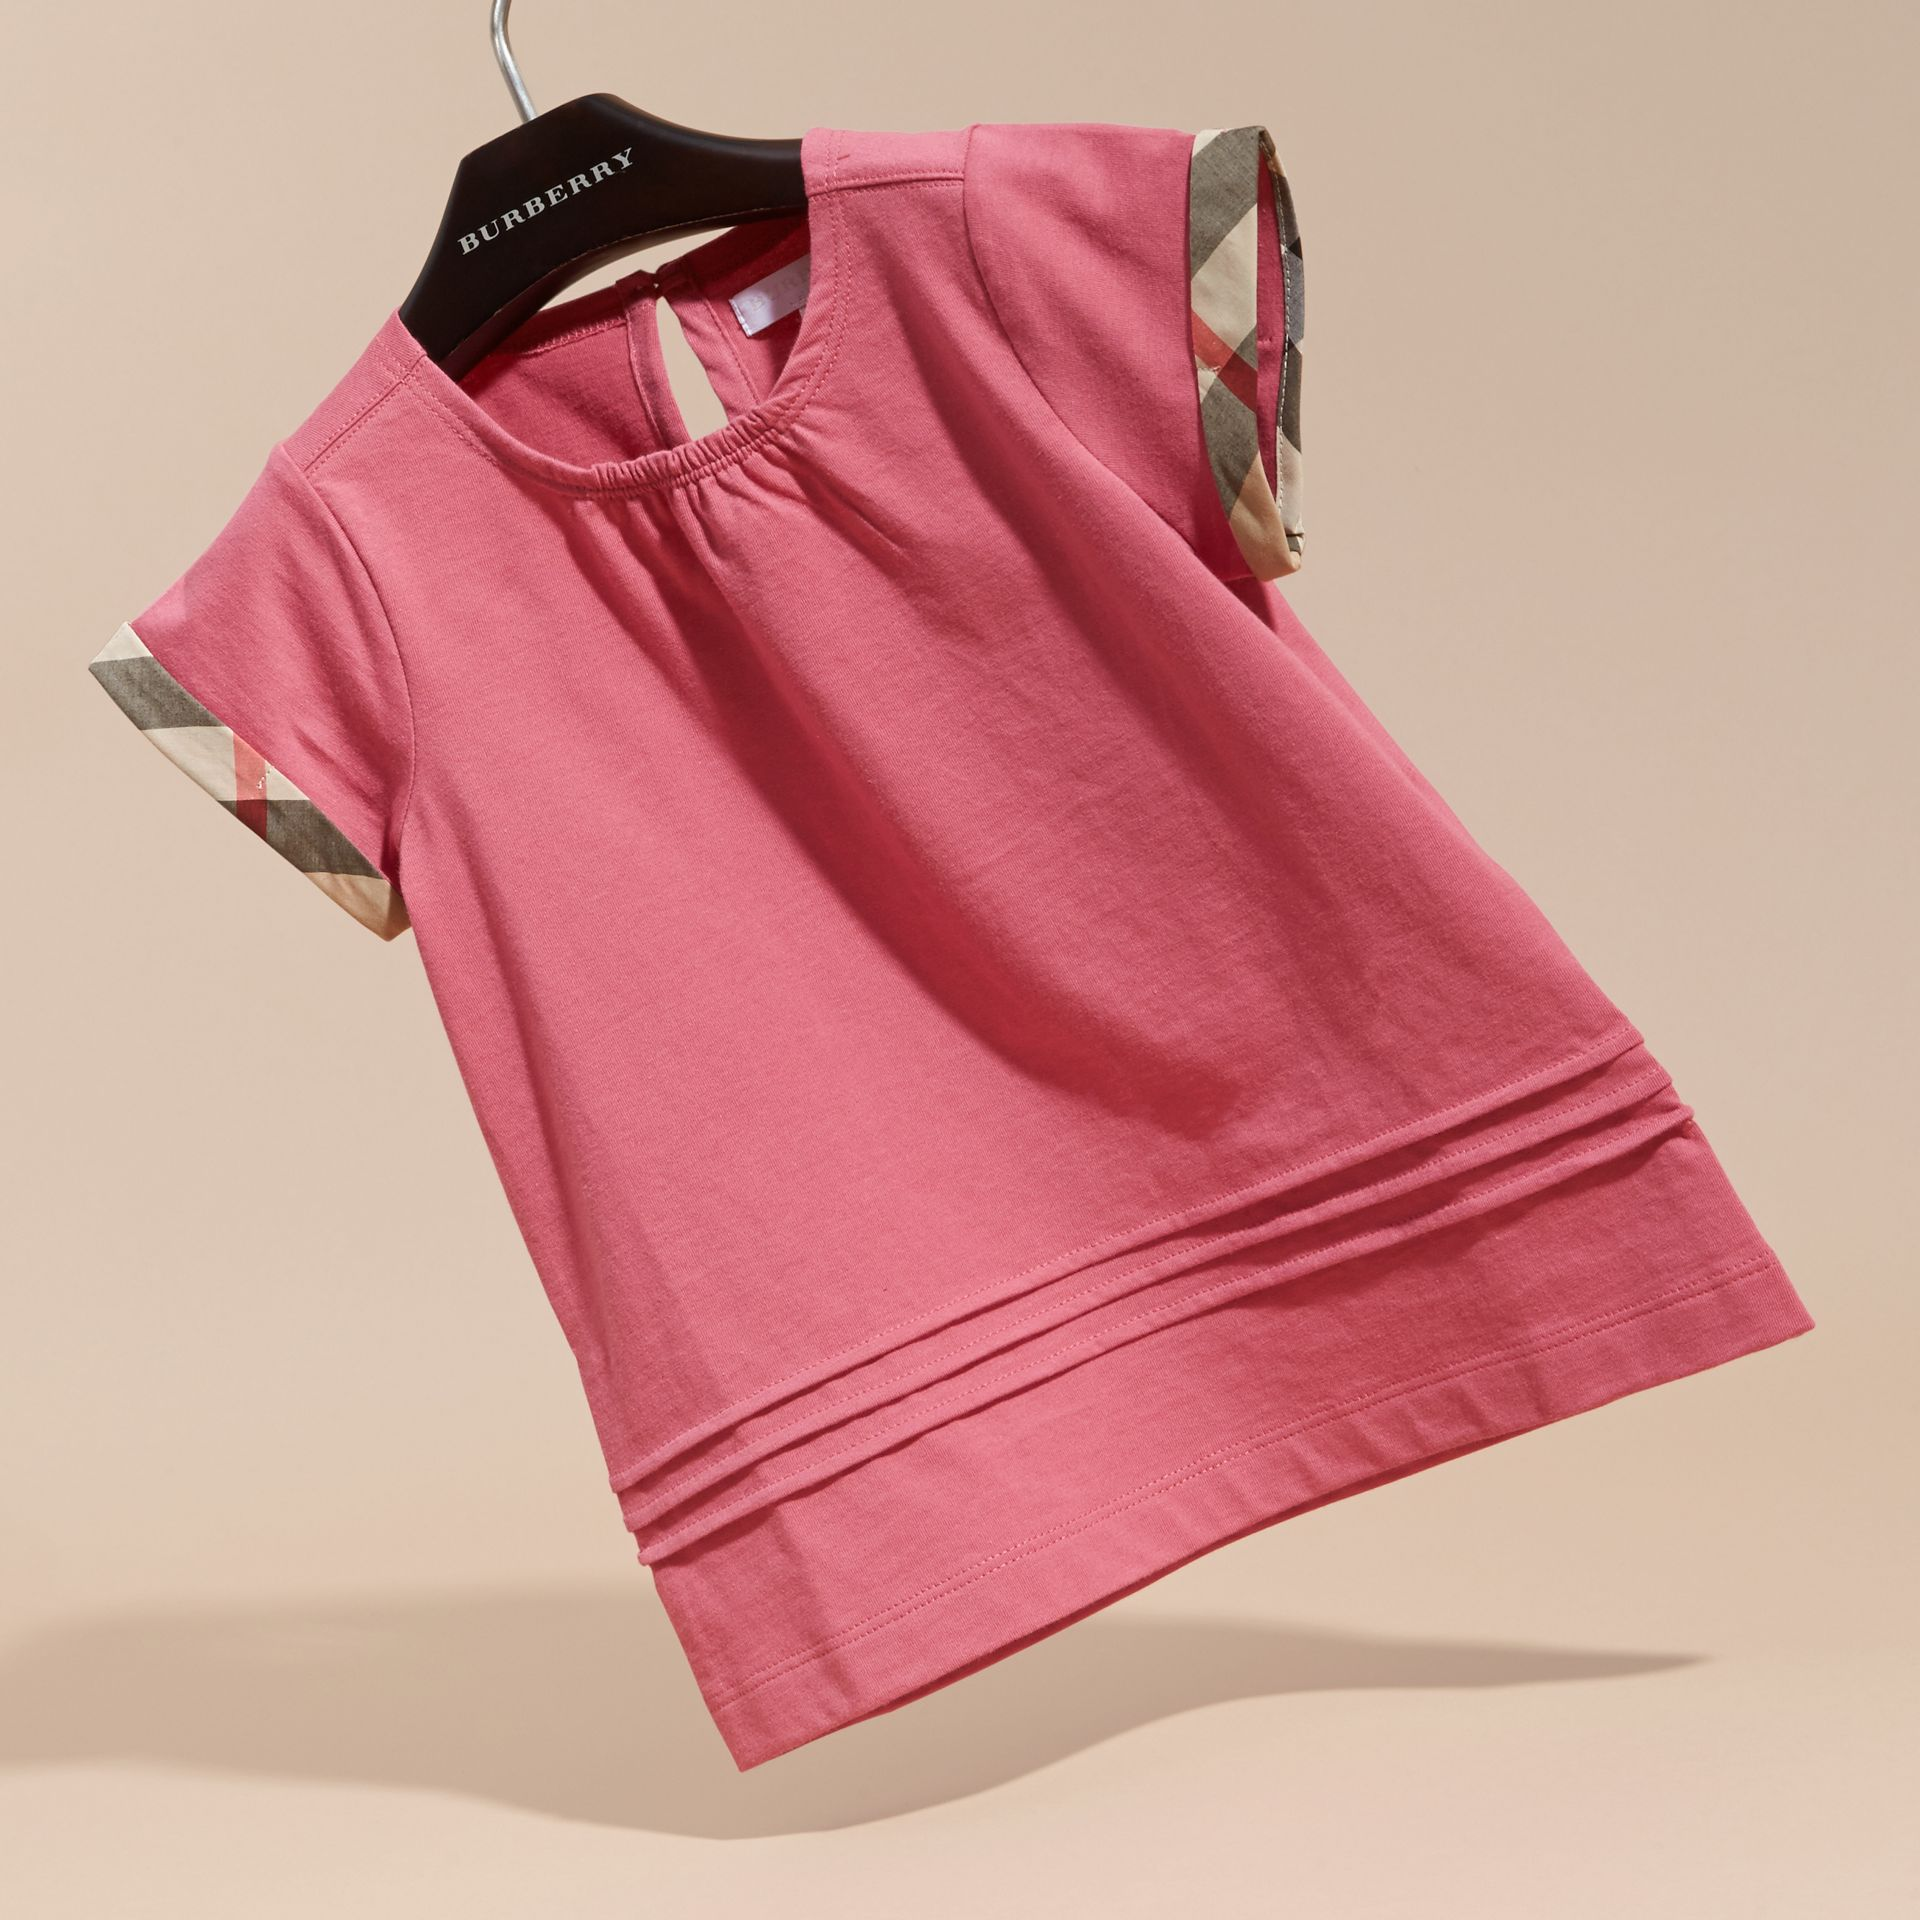 Pleat and Check Detail Cotton T-shirt in Pink Azalea - Girl | Burberry - gallery image 3